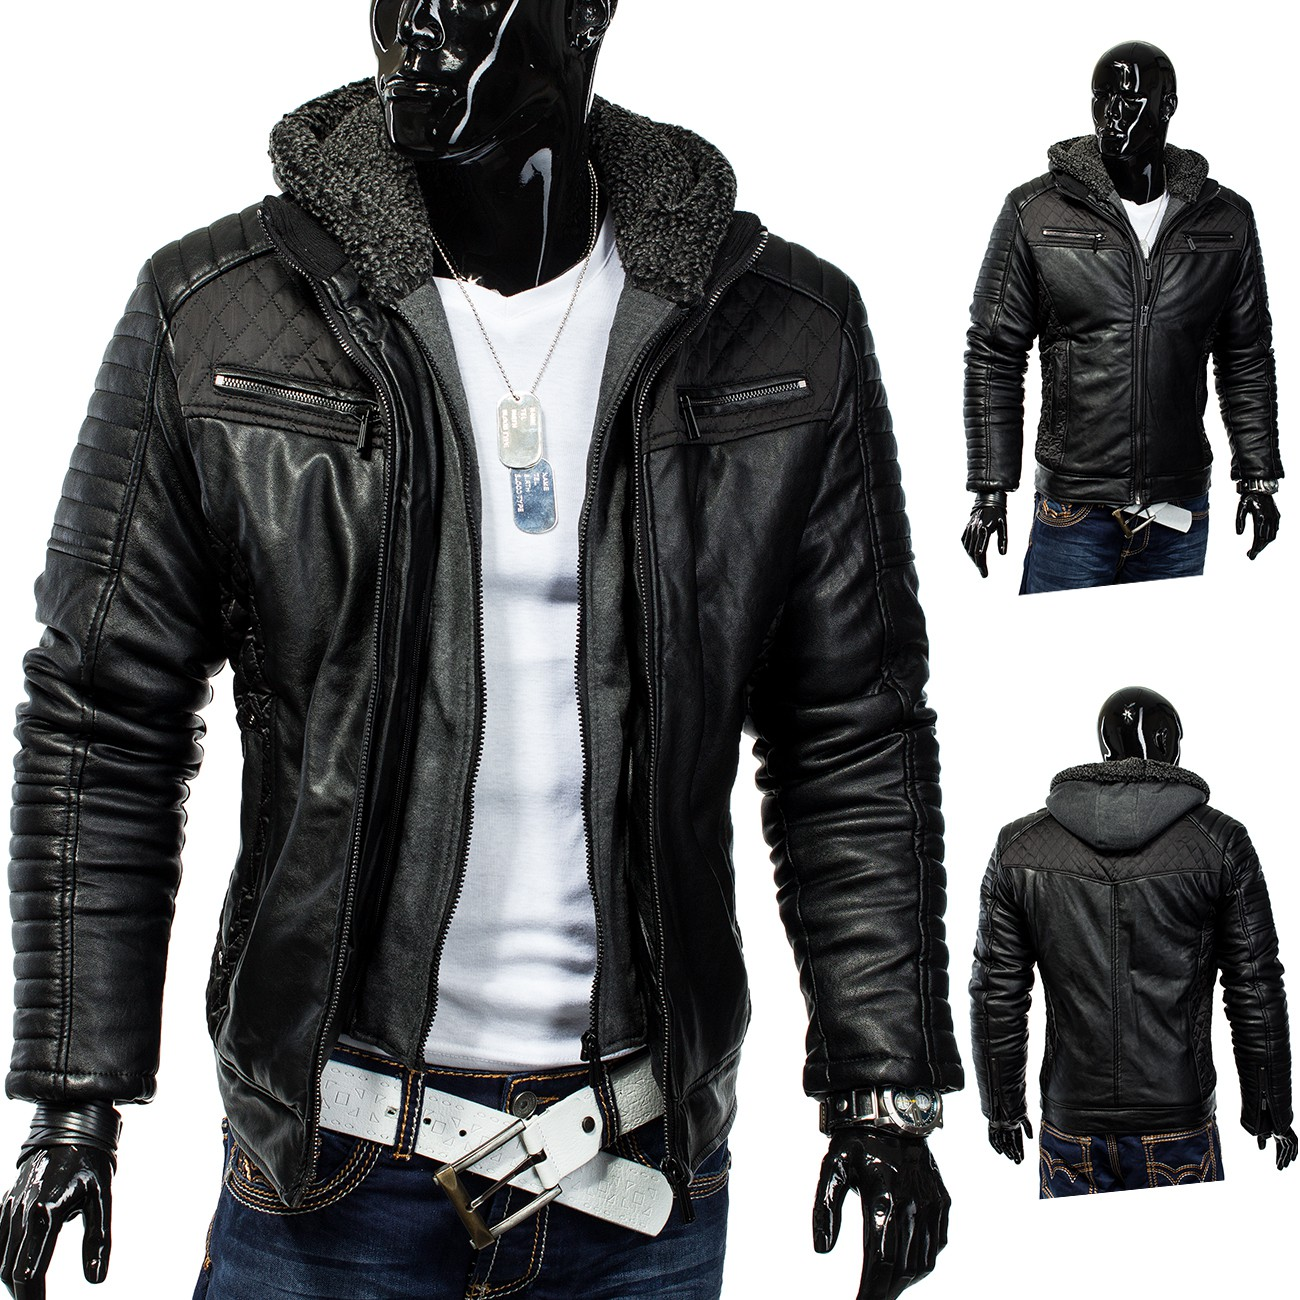 herren winterjacke jacke dope dragon biker lederjacke. Black Bedroom Furniture Sets. Home Design Ideas